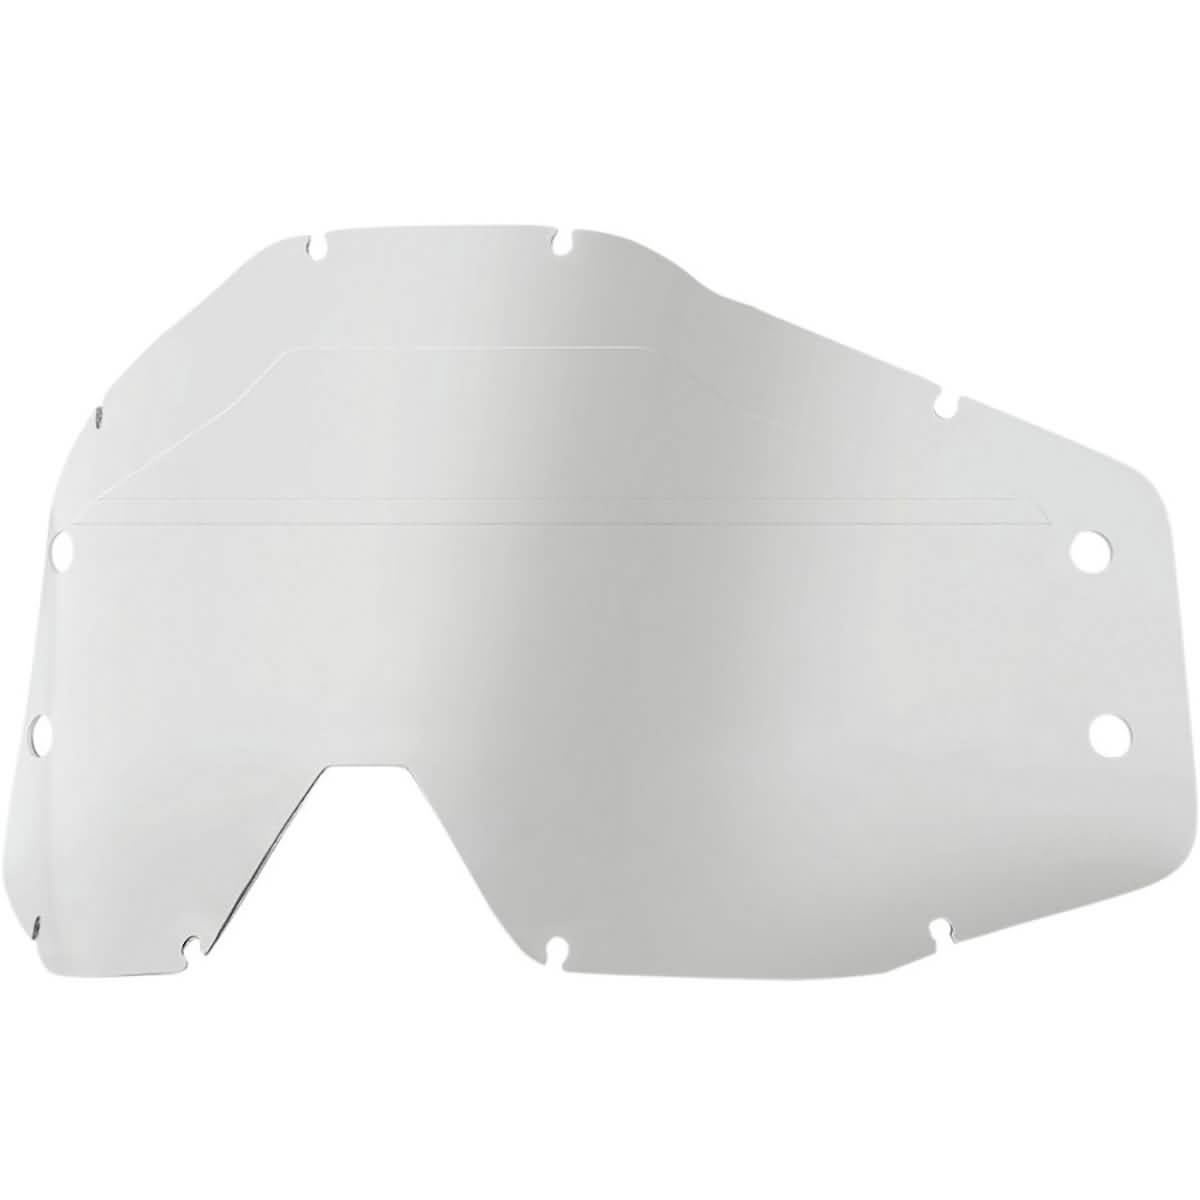 100% Forecast Replacement Lens Goggle Accessories-951762